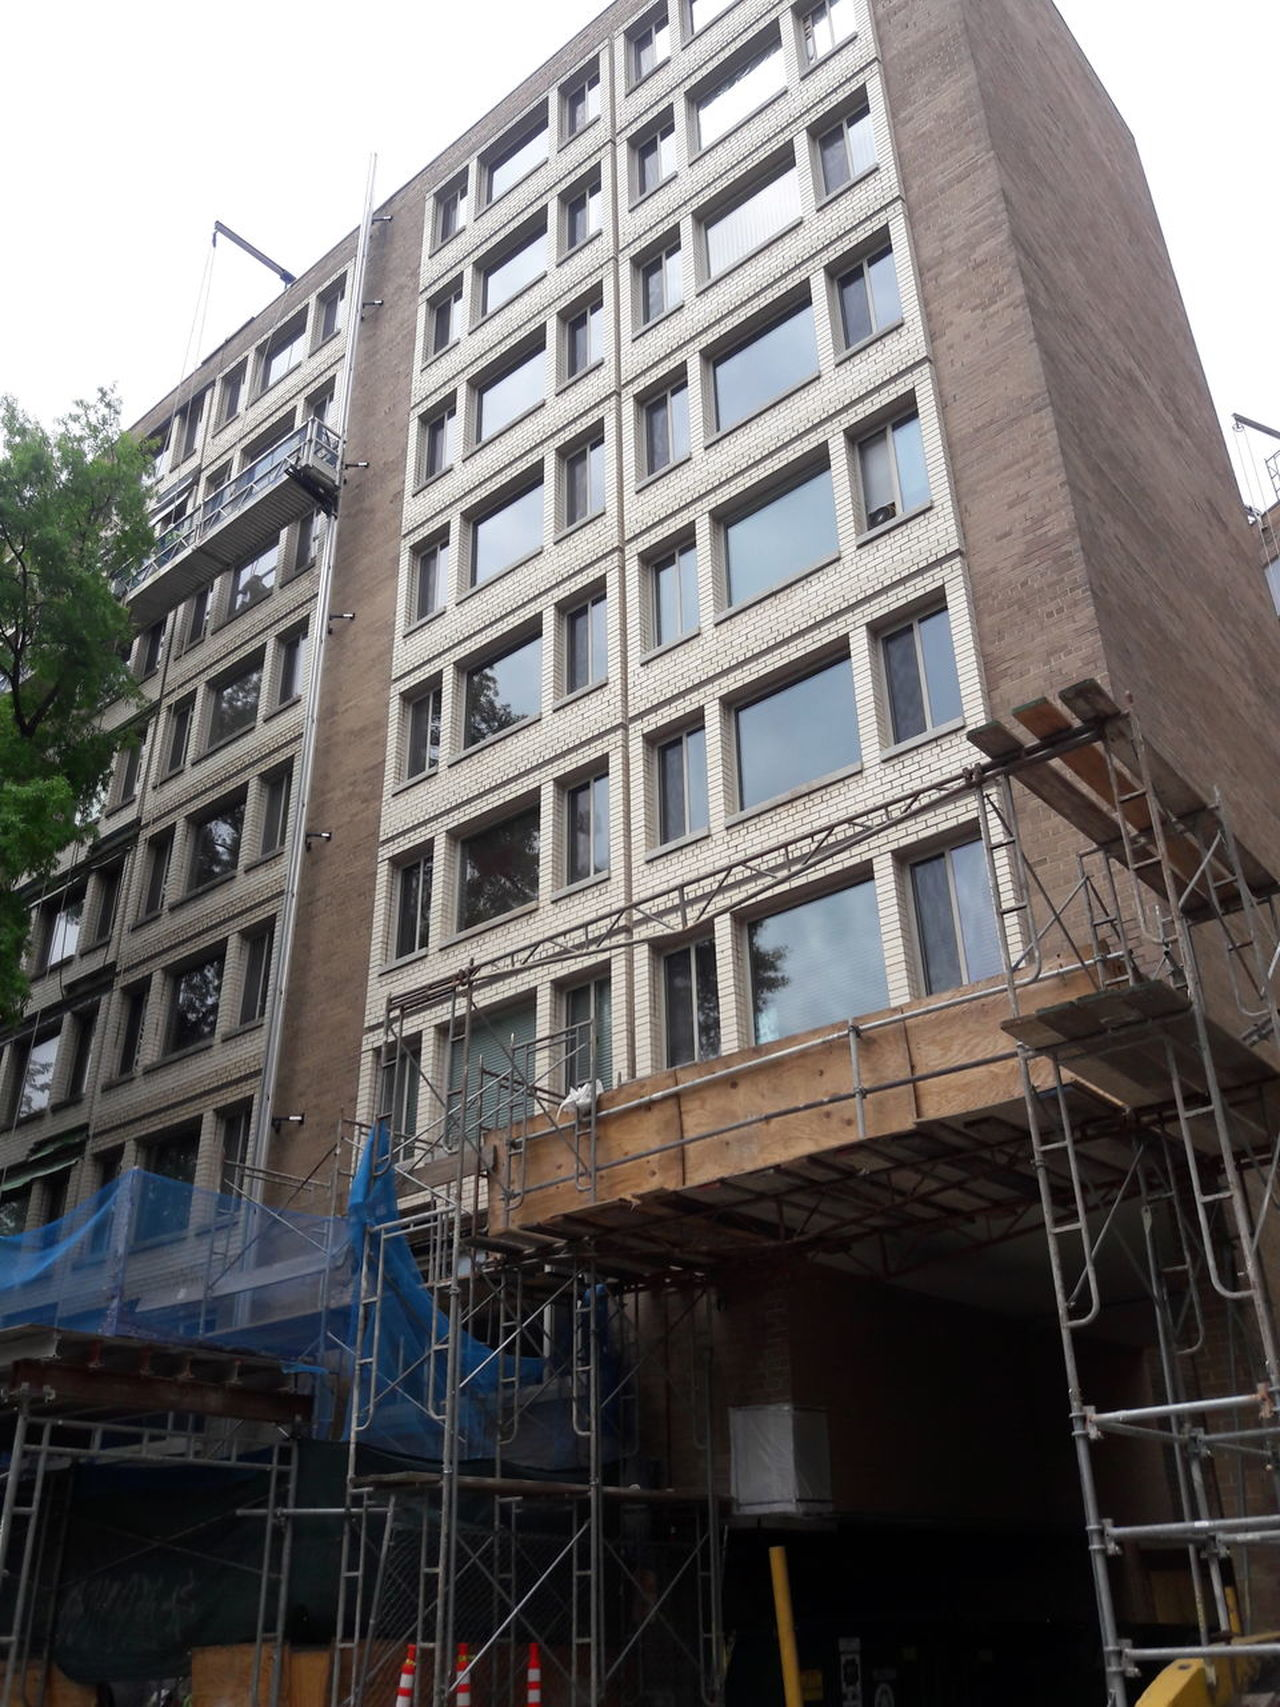 Architecture Building Exterior construction Built Structure Low Angle View Day No People Outdoors apartment City, Scaffolding